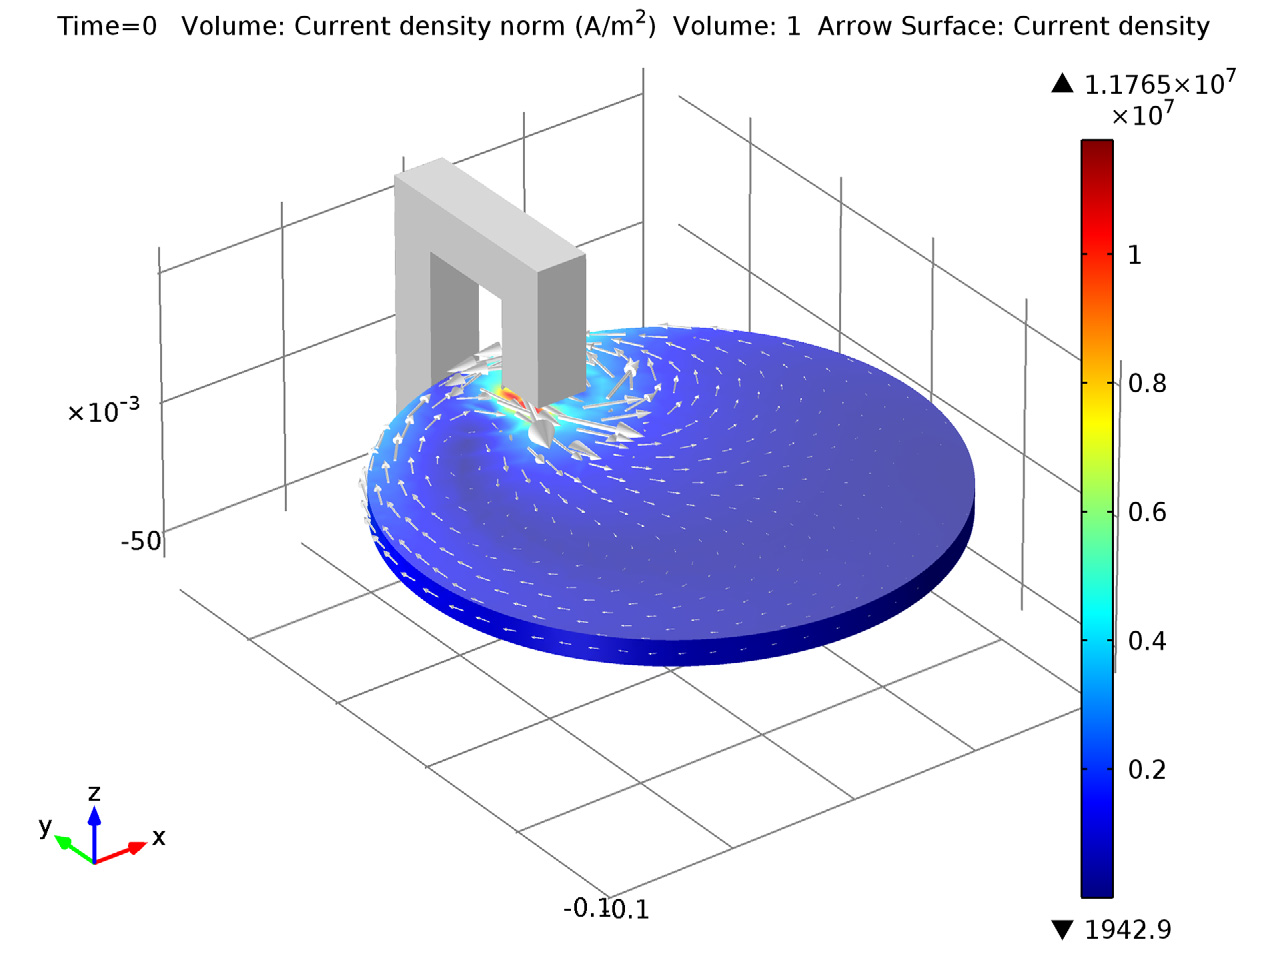 3d model showing induced eddy current density and direction at t=0 s